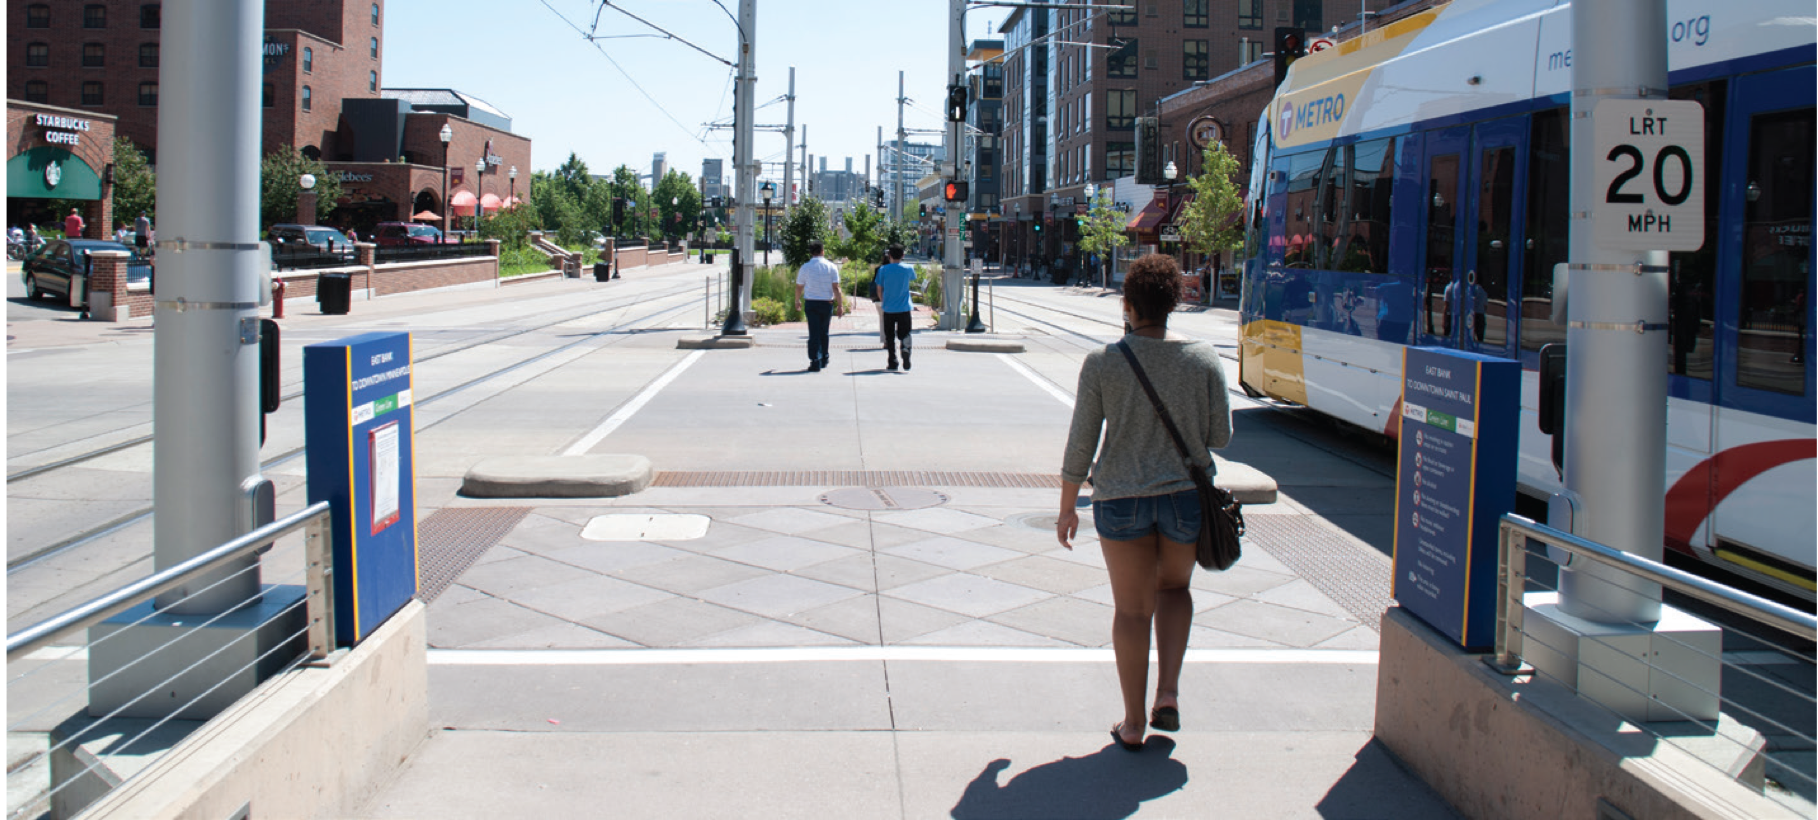 University Ave, Minneapolis (credit: MetroTransit)